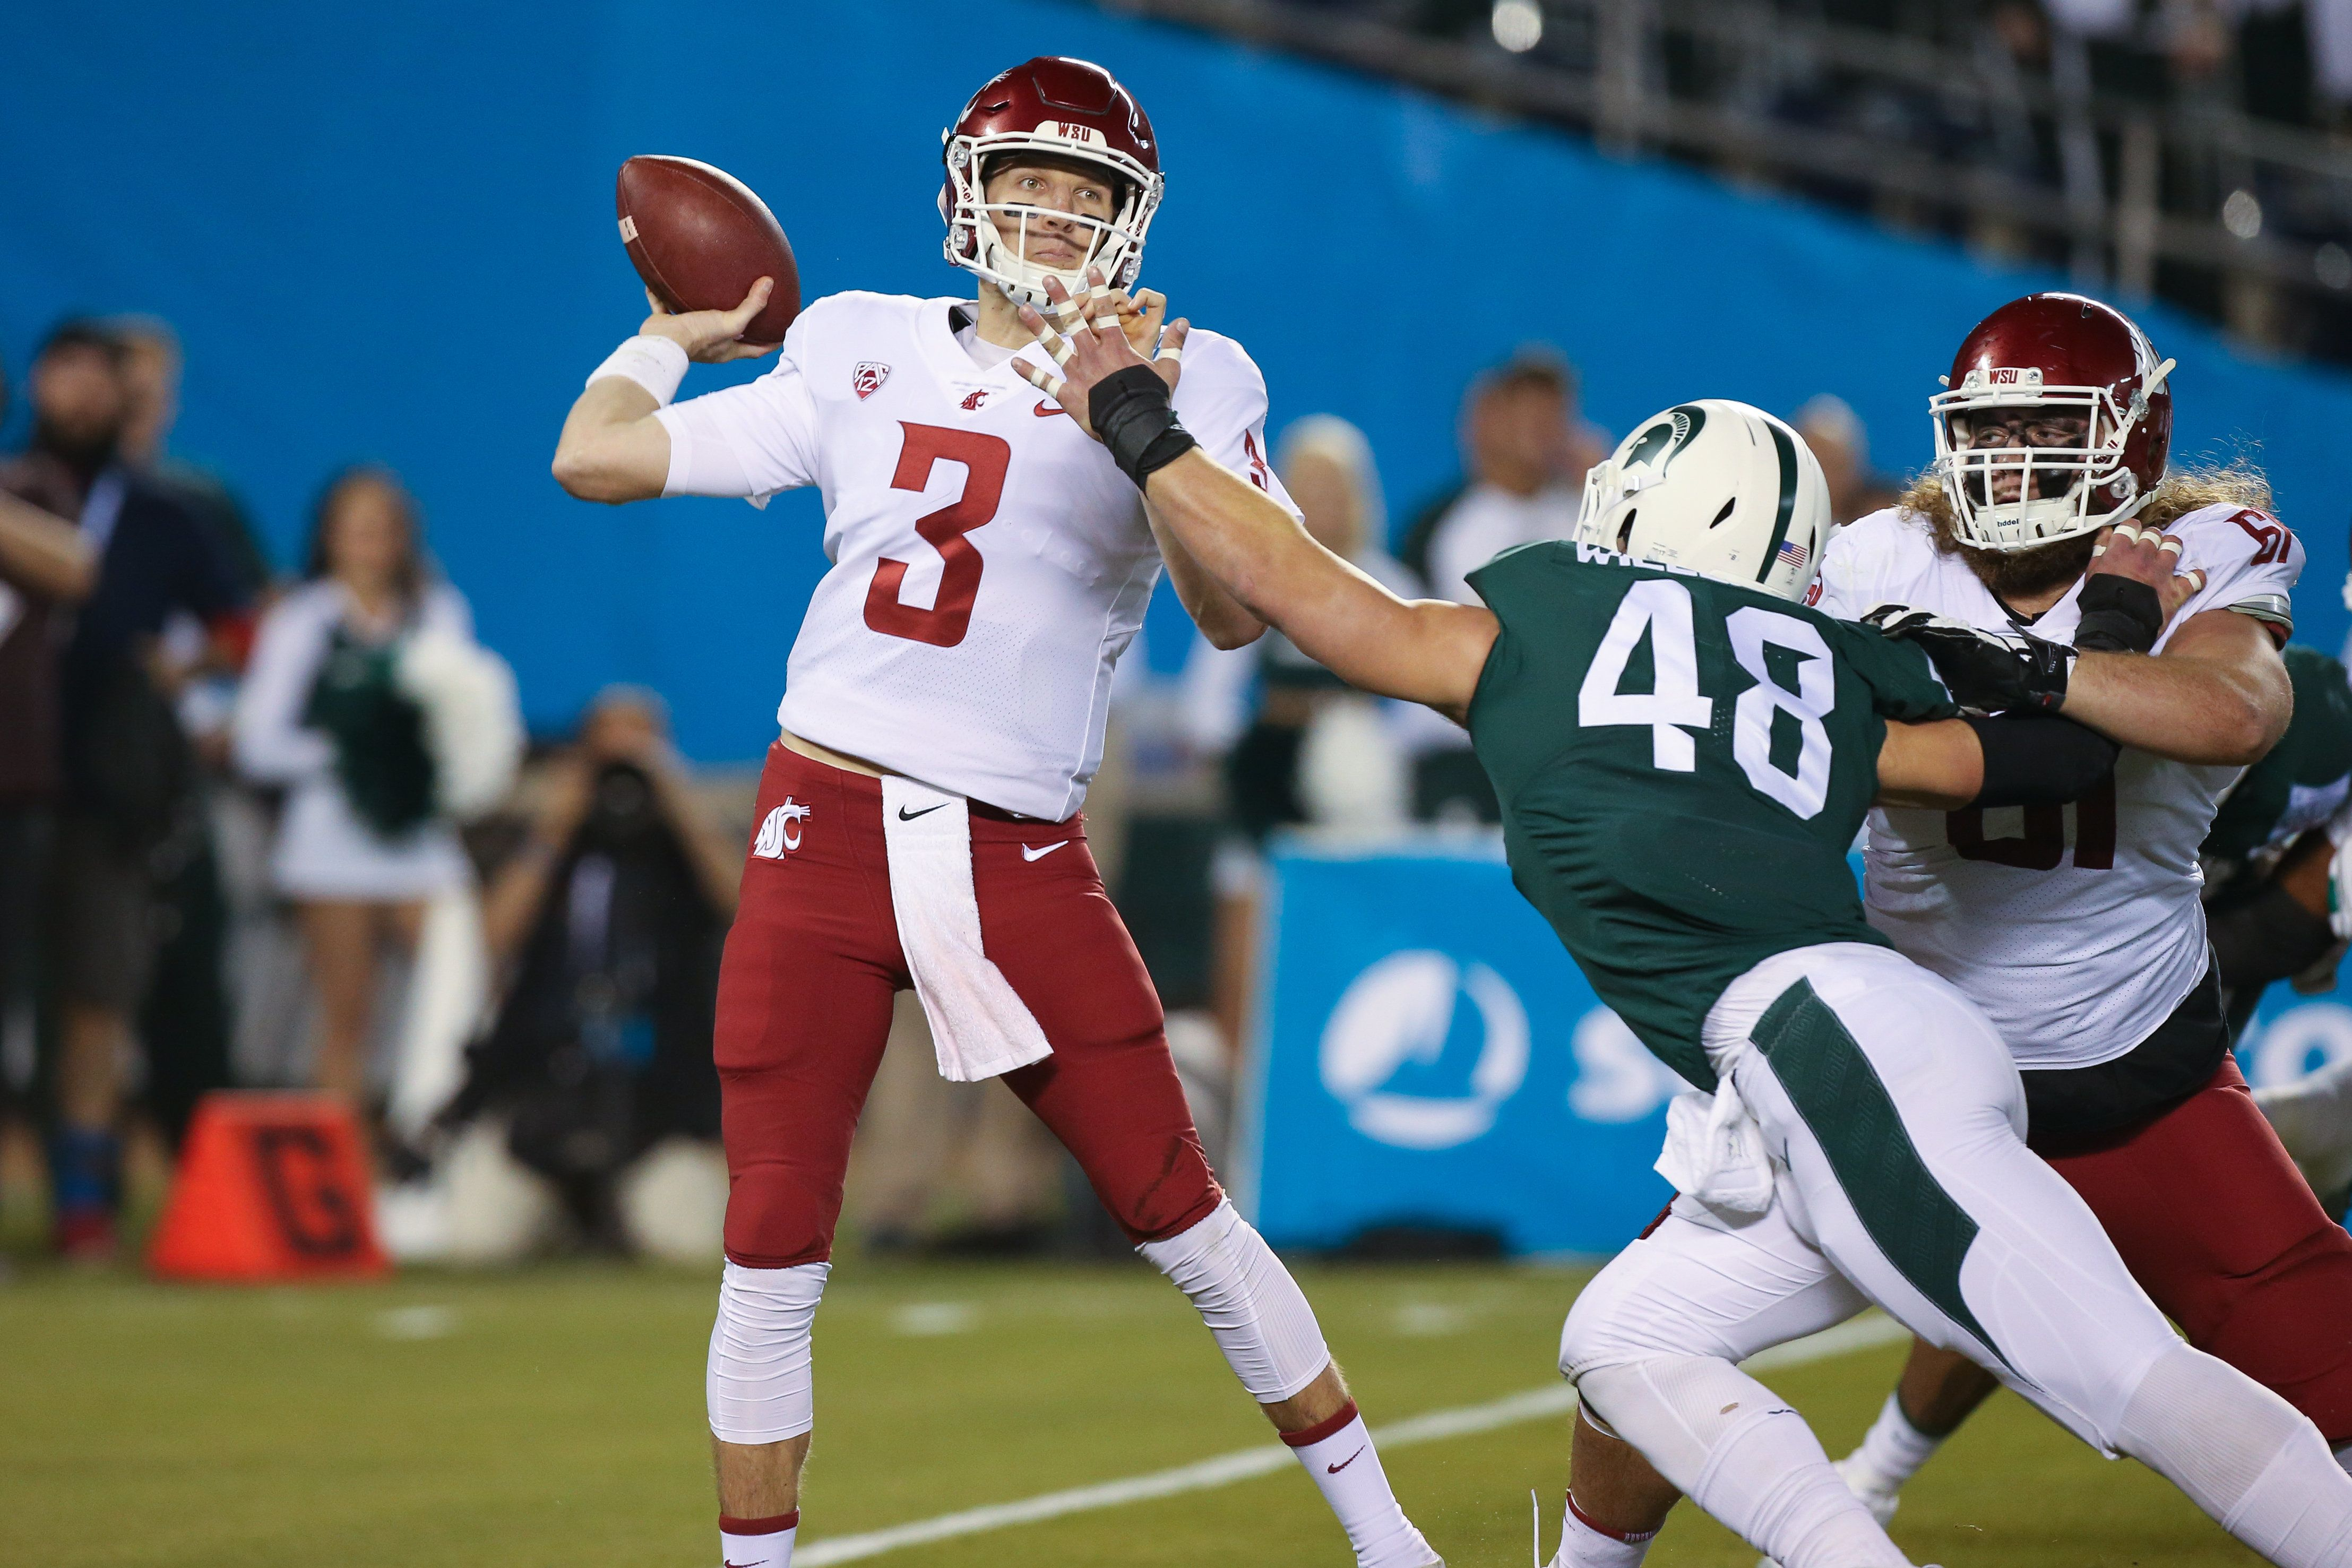 SAN DIEGO, CA - DECEMBER 28: Tyler Hilinski (3) of the Washington State Cougars attempts to throw the ball in the game between the Washington State Cougars and the Michigan State Spartans on December 28, 2017 at the Holiday Bowl in San Diego, CA. (Photo by Jordon Kelly/Icon Sportswire via Getty Images)